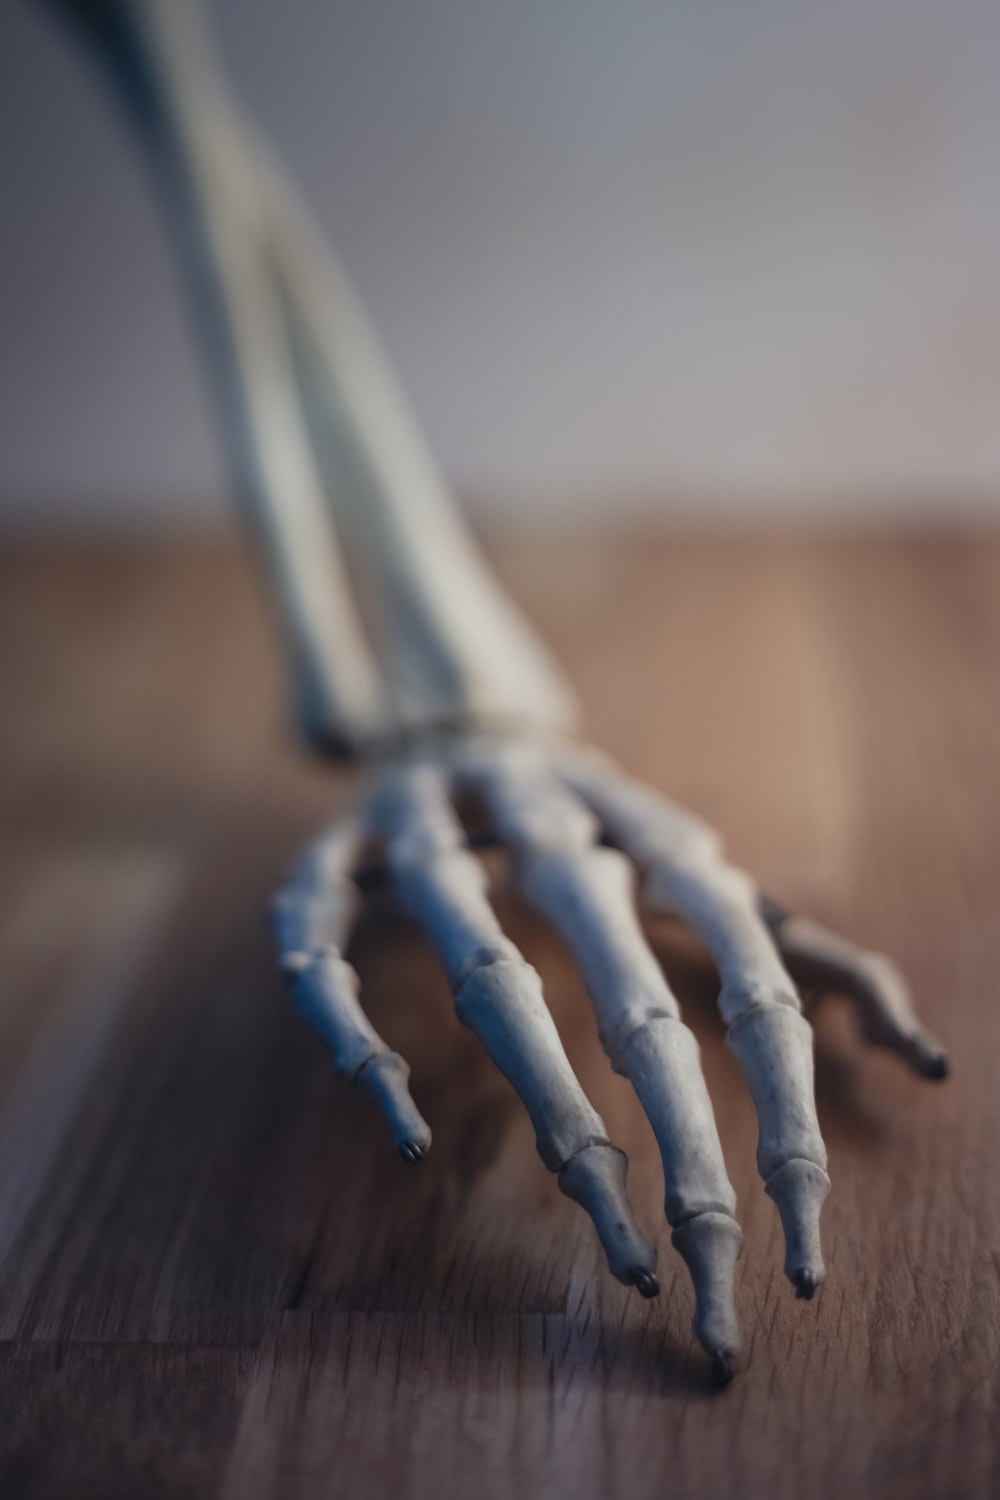 gray rope on brown wooden table